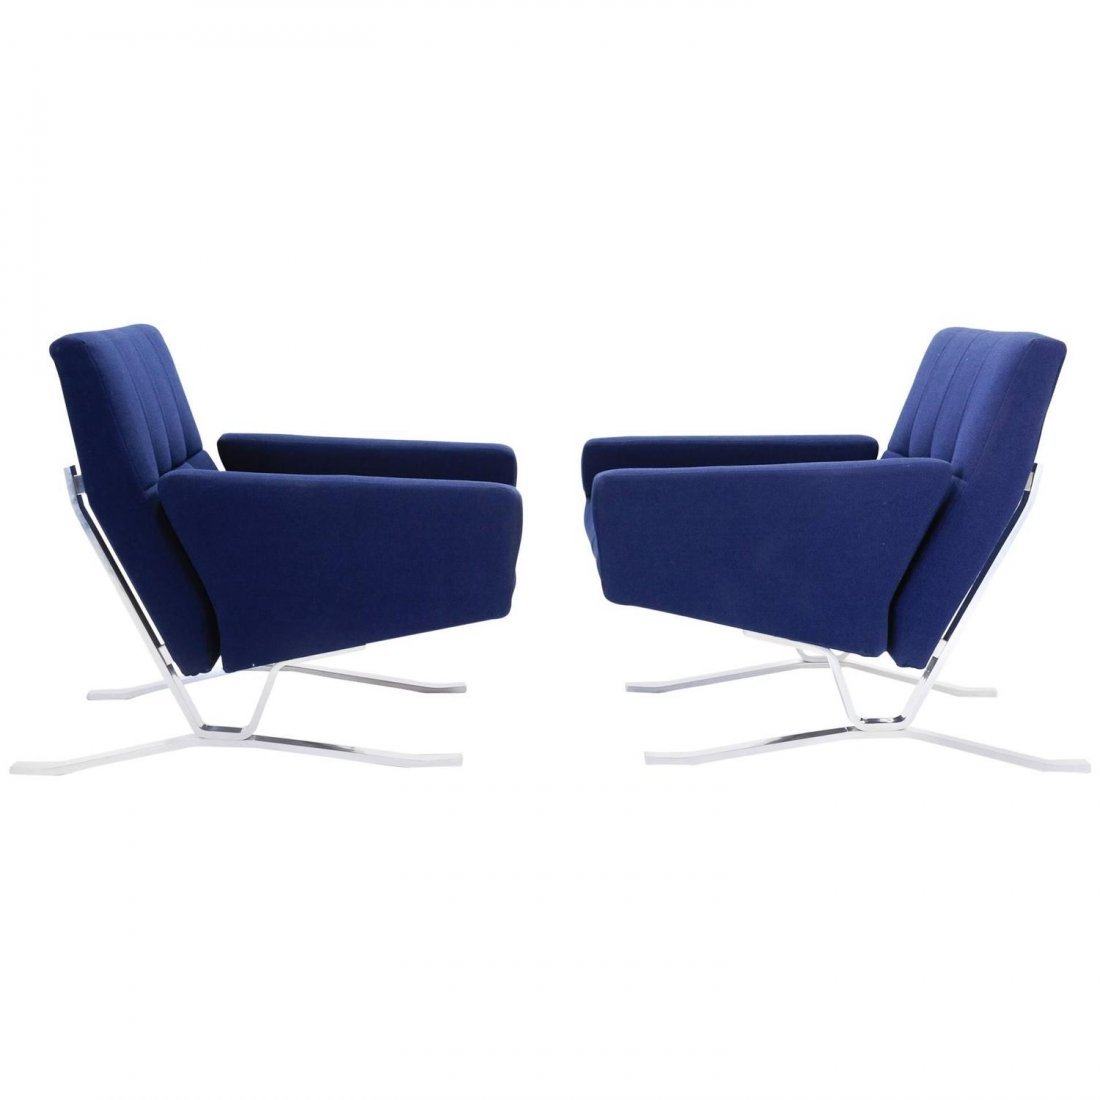 Club Chairs for JG Furniture Co. after Poul Kjaerholm